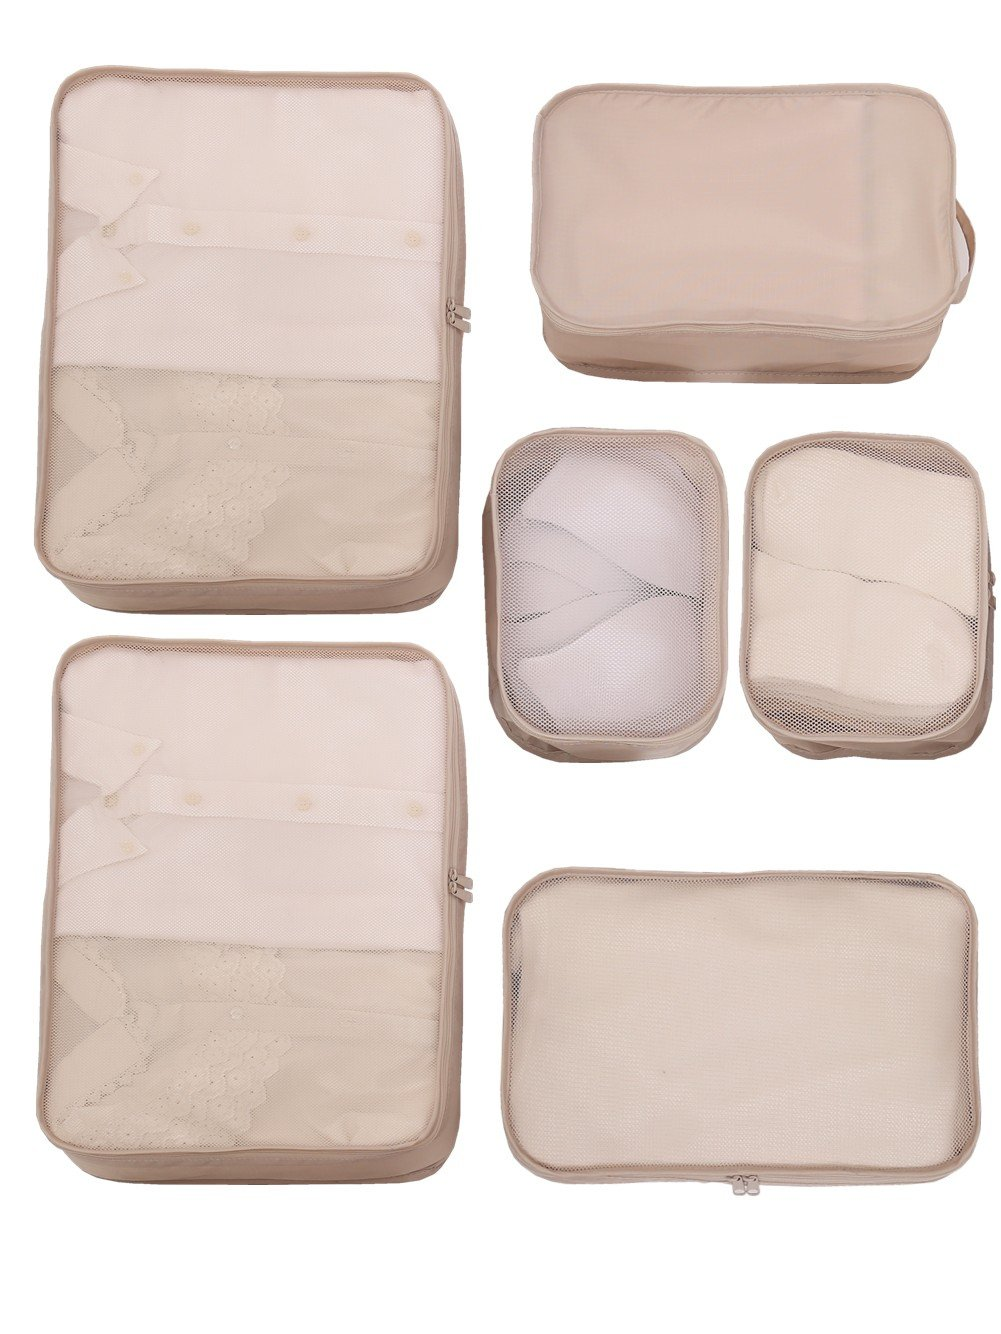 JJ POWER Lightweight Travel Packing Cubes -Multi function, Durable 6 Piece (Cream) by JJ POWER